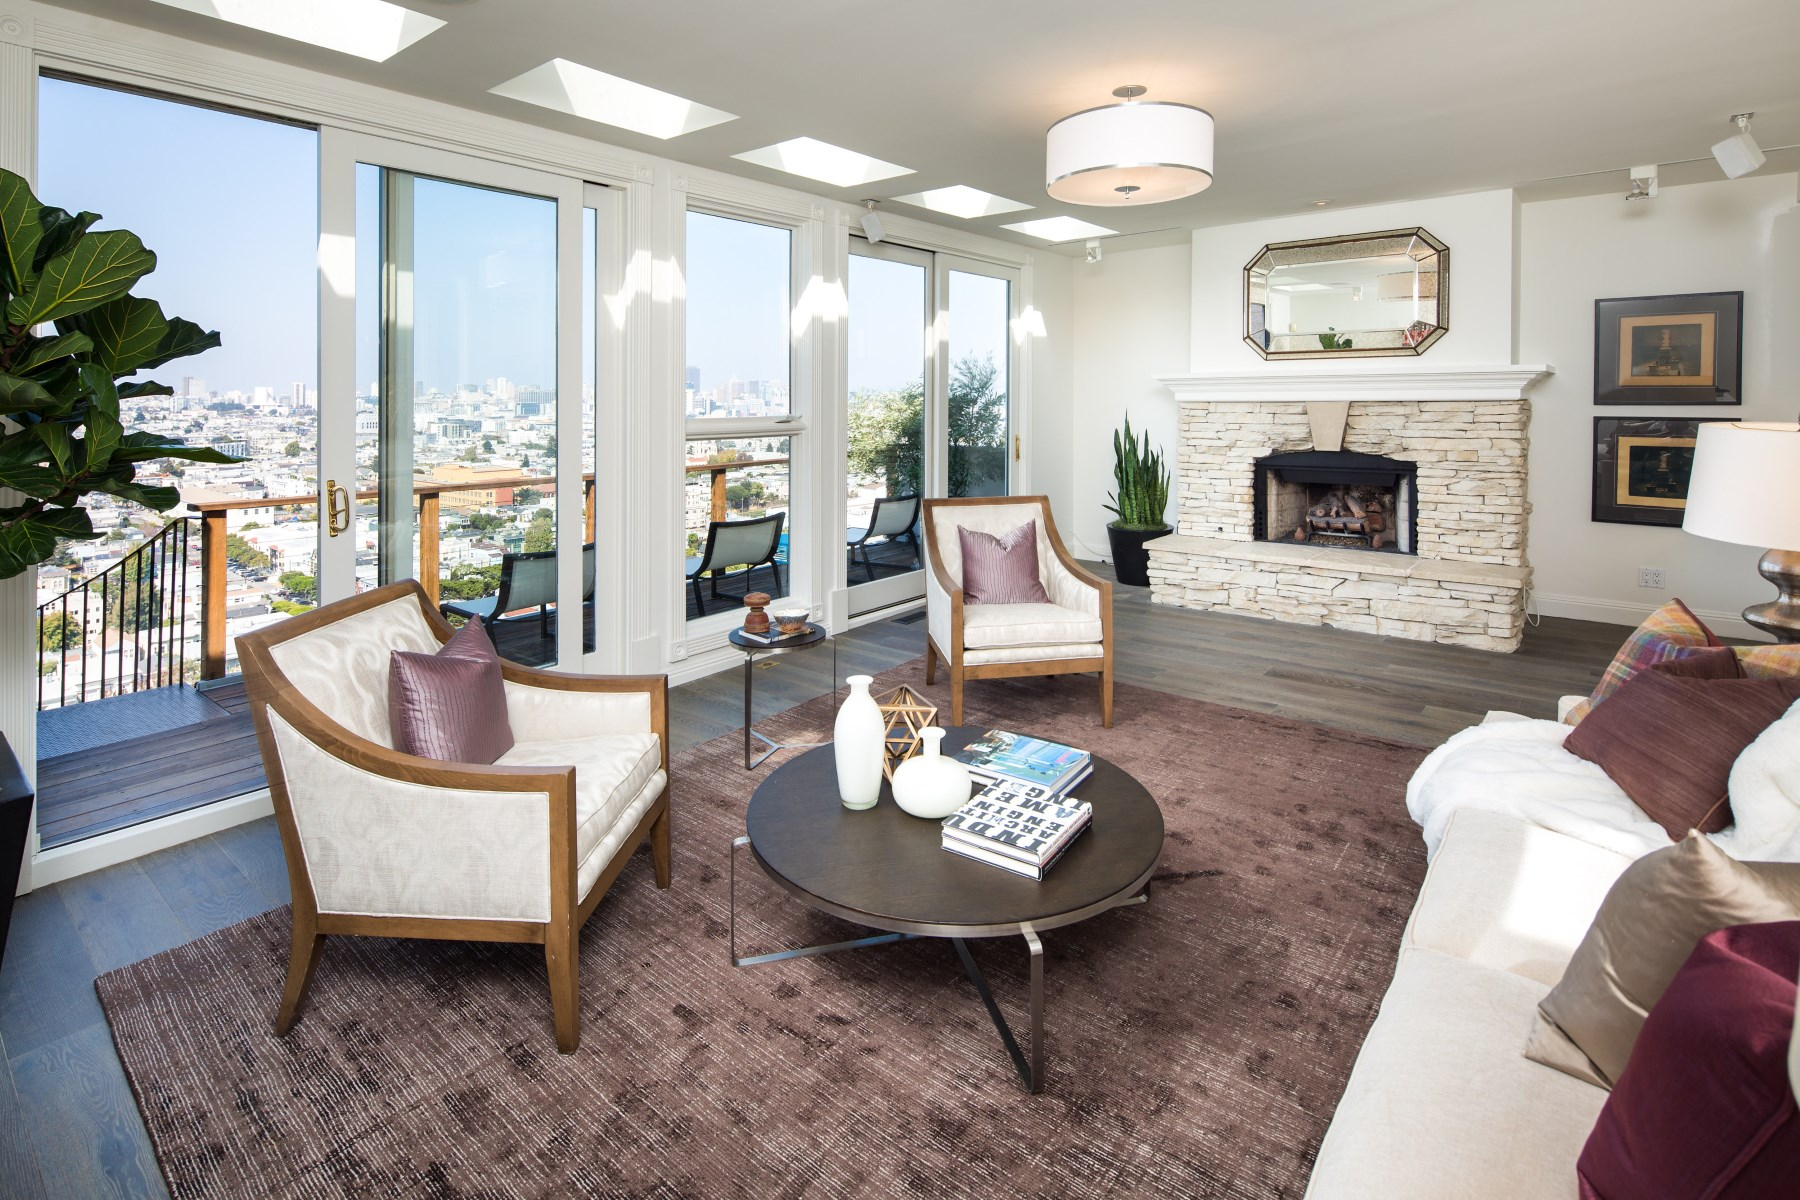 Single Family Home for Sale at Commanding Views on Coveted Cumberland 340 Cumberland St San Francisco, California, 94114 United States